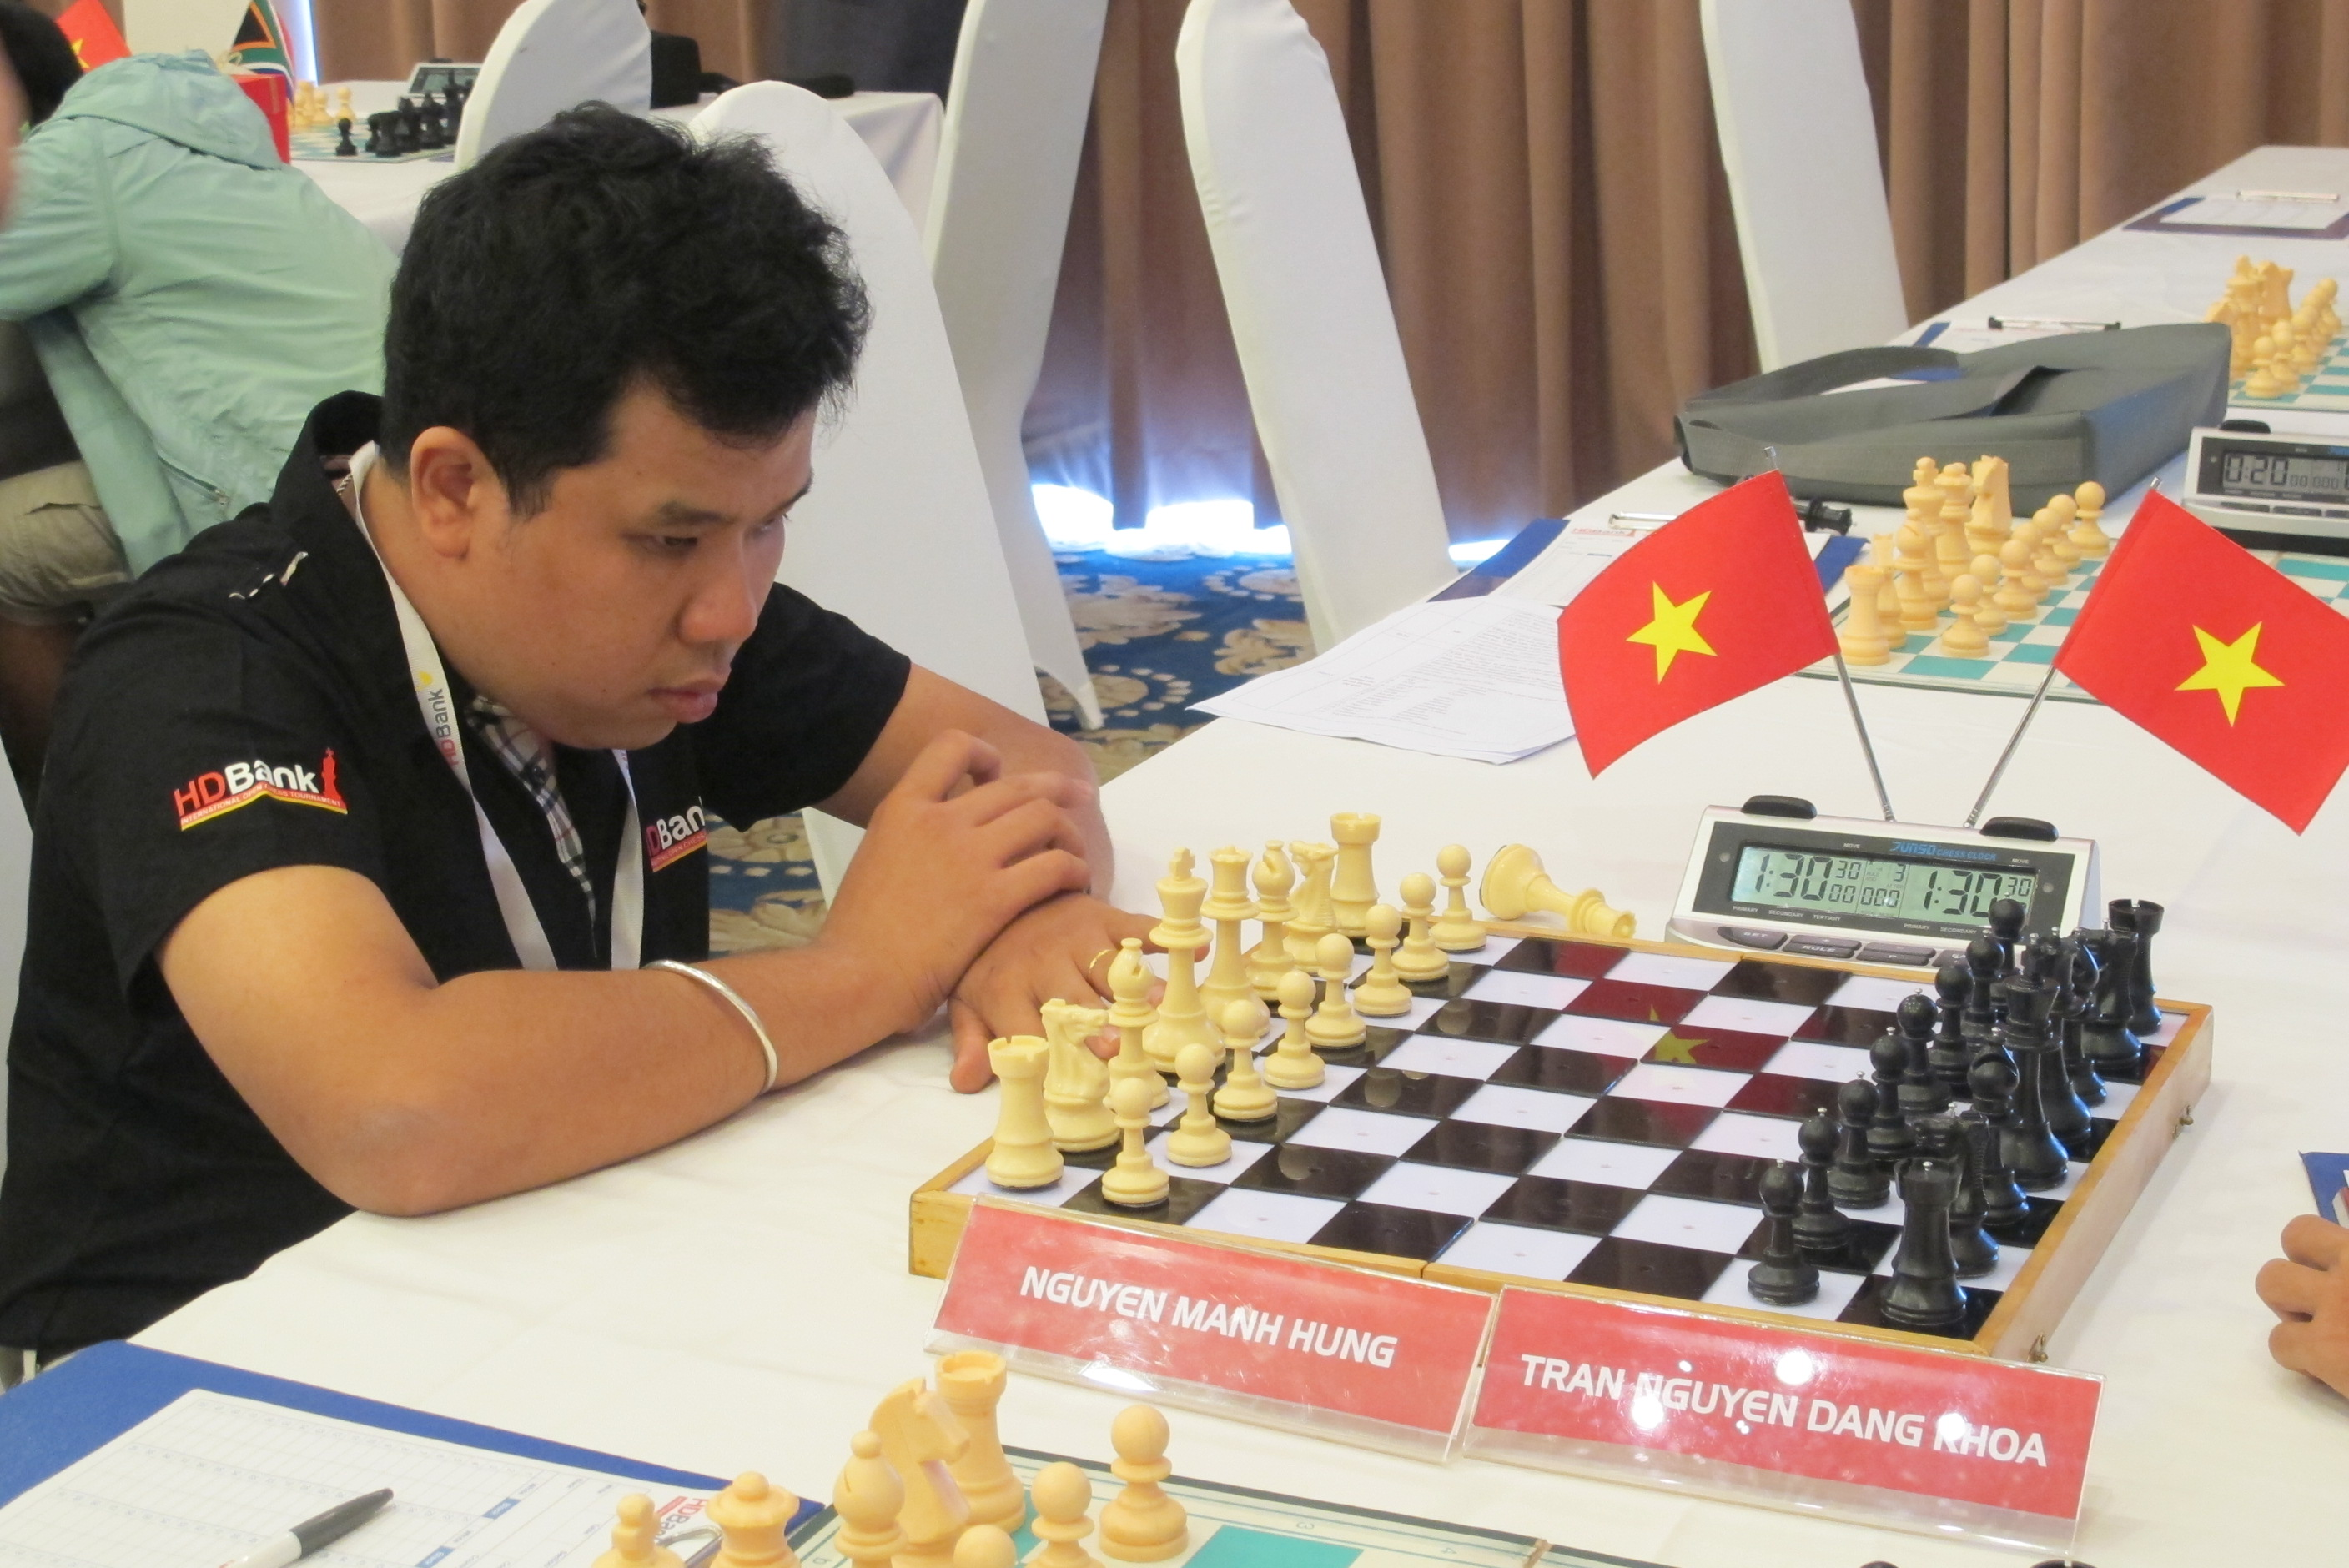 Nguyen Manh Hung competes in the HDBank international open chess tournament